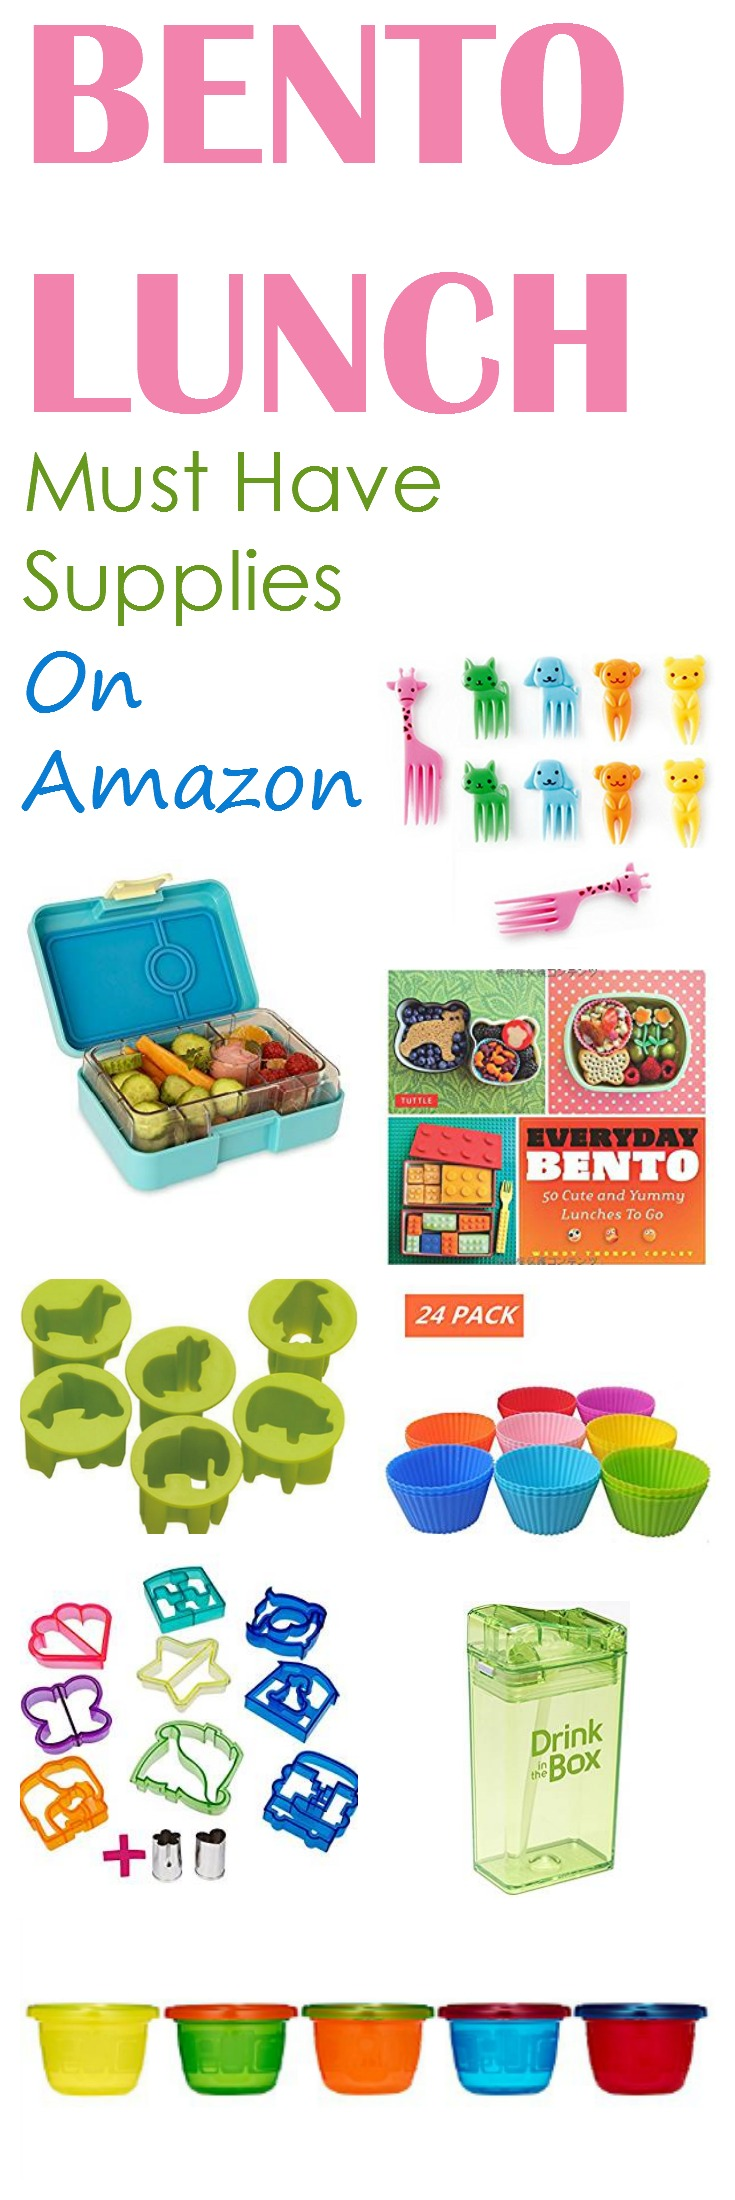 STOP right now and check out these Benton Lunch supplies on Amazon